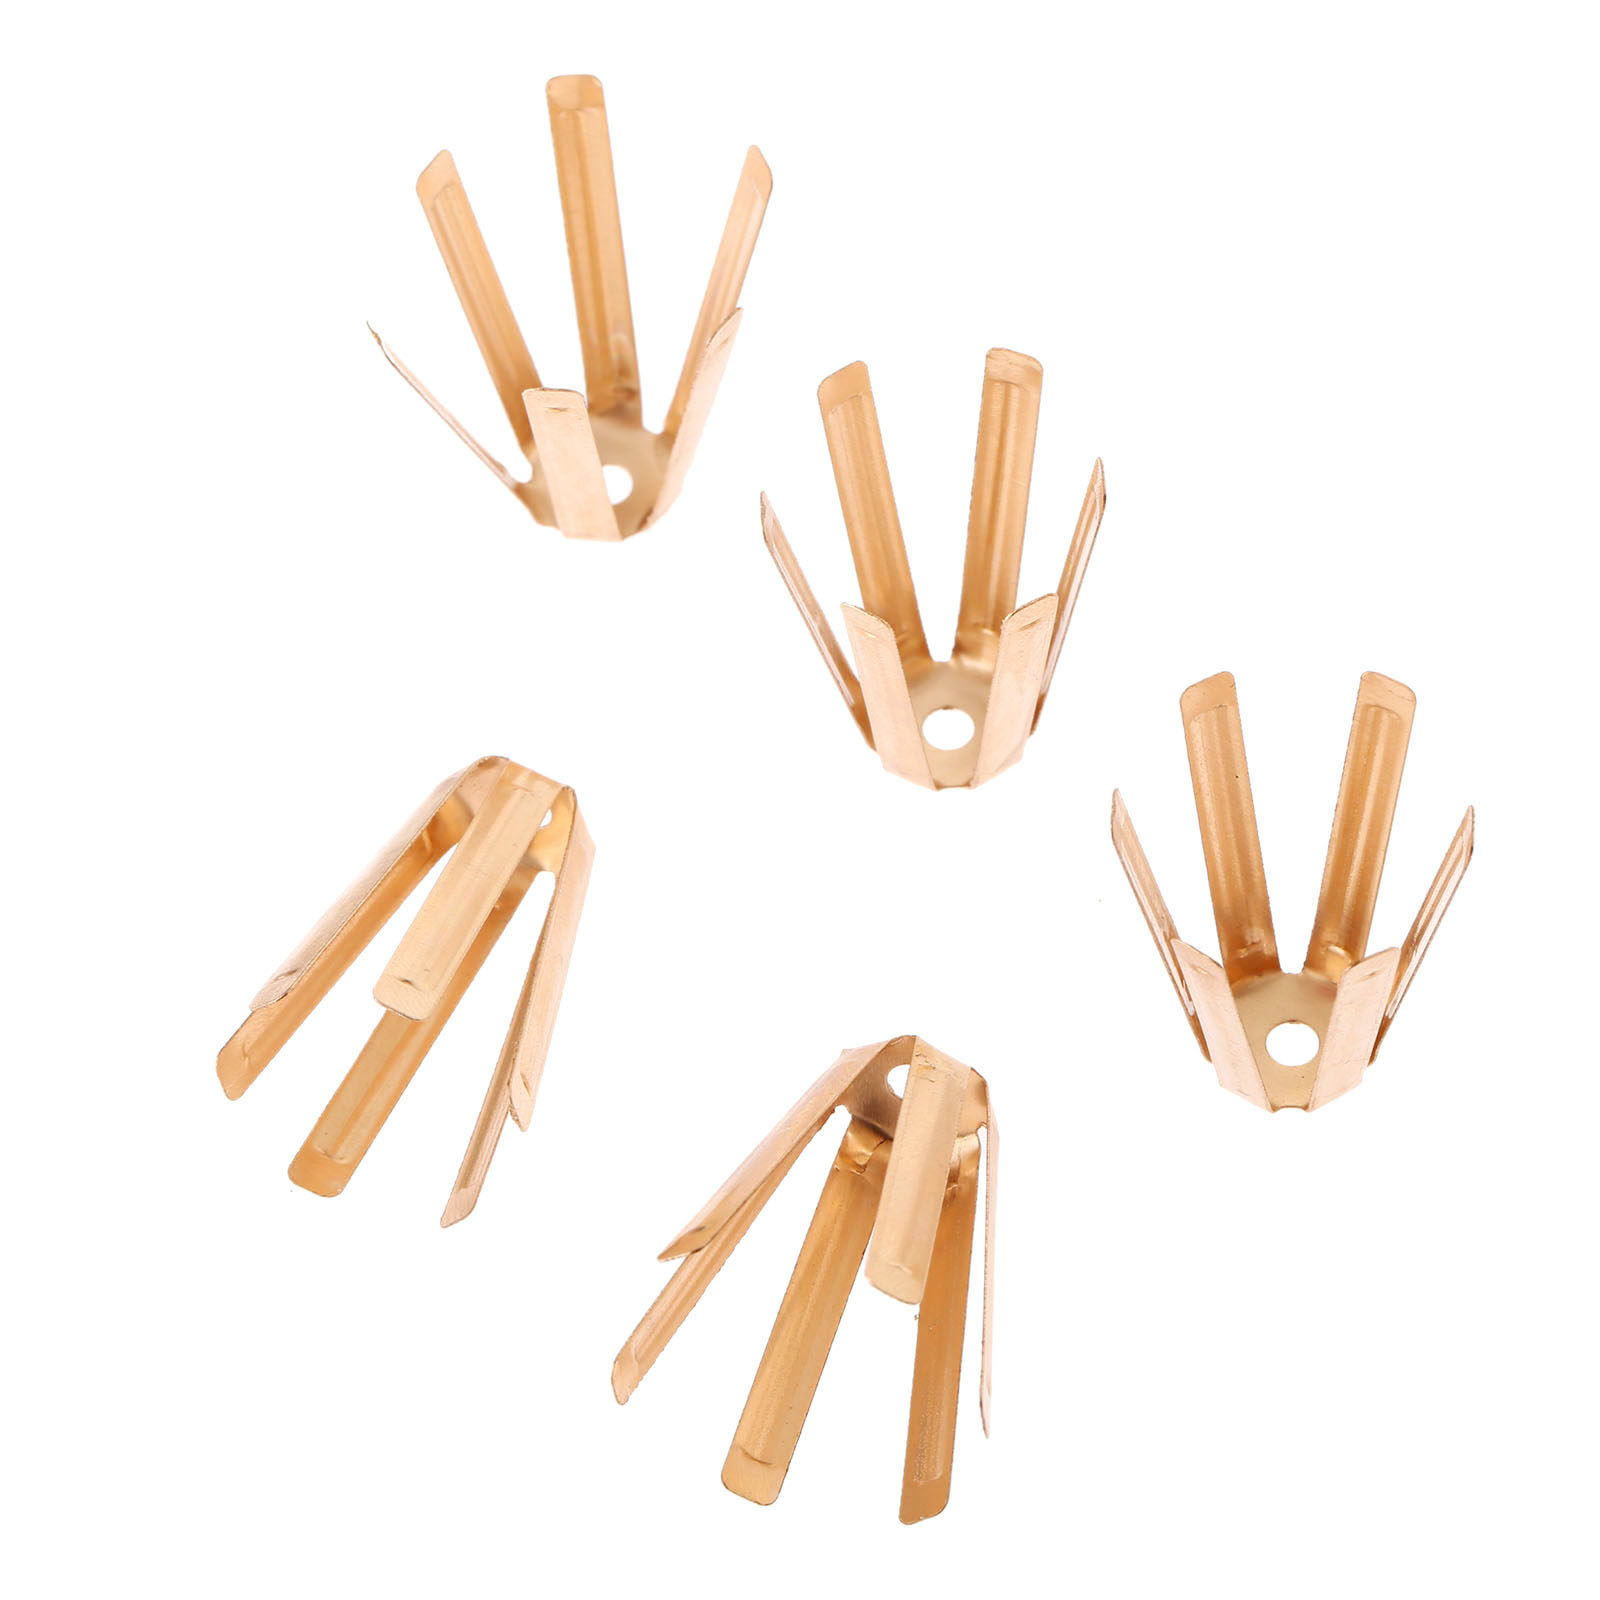 Image 4 - gohantee 10Pcs Golf Brass Adapter Spacer Shims Model 0.335 And 0.350 24mm Fit For Golf Shafts And Golf Club Heads Accessories-in Club Heads from Sports & Entertainment